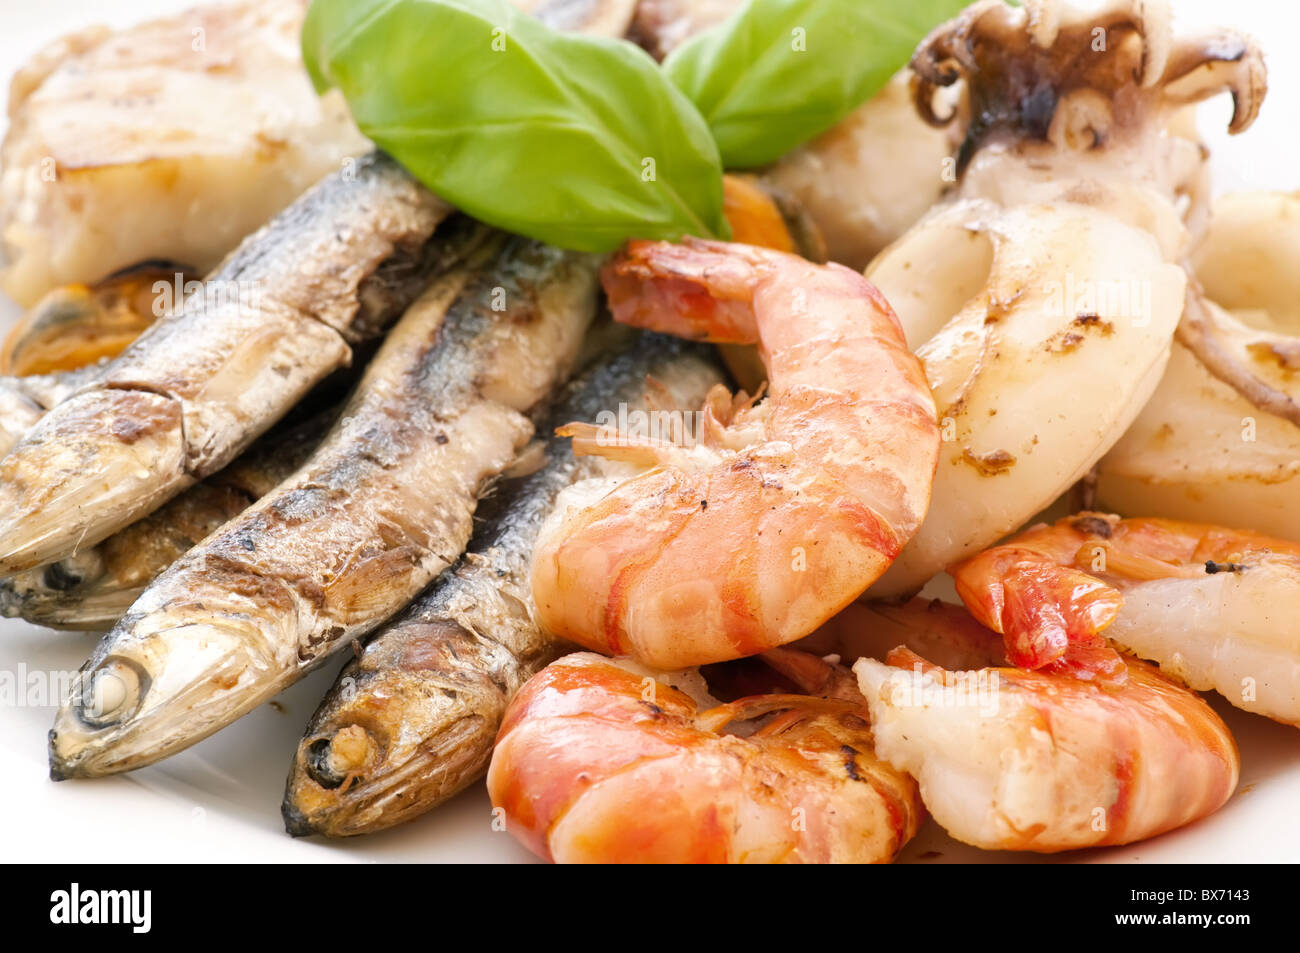 Fried seafood with anchovies and fish as closeup on a white plate - Stock Image